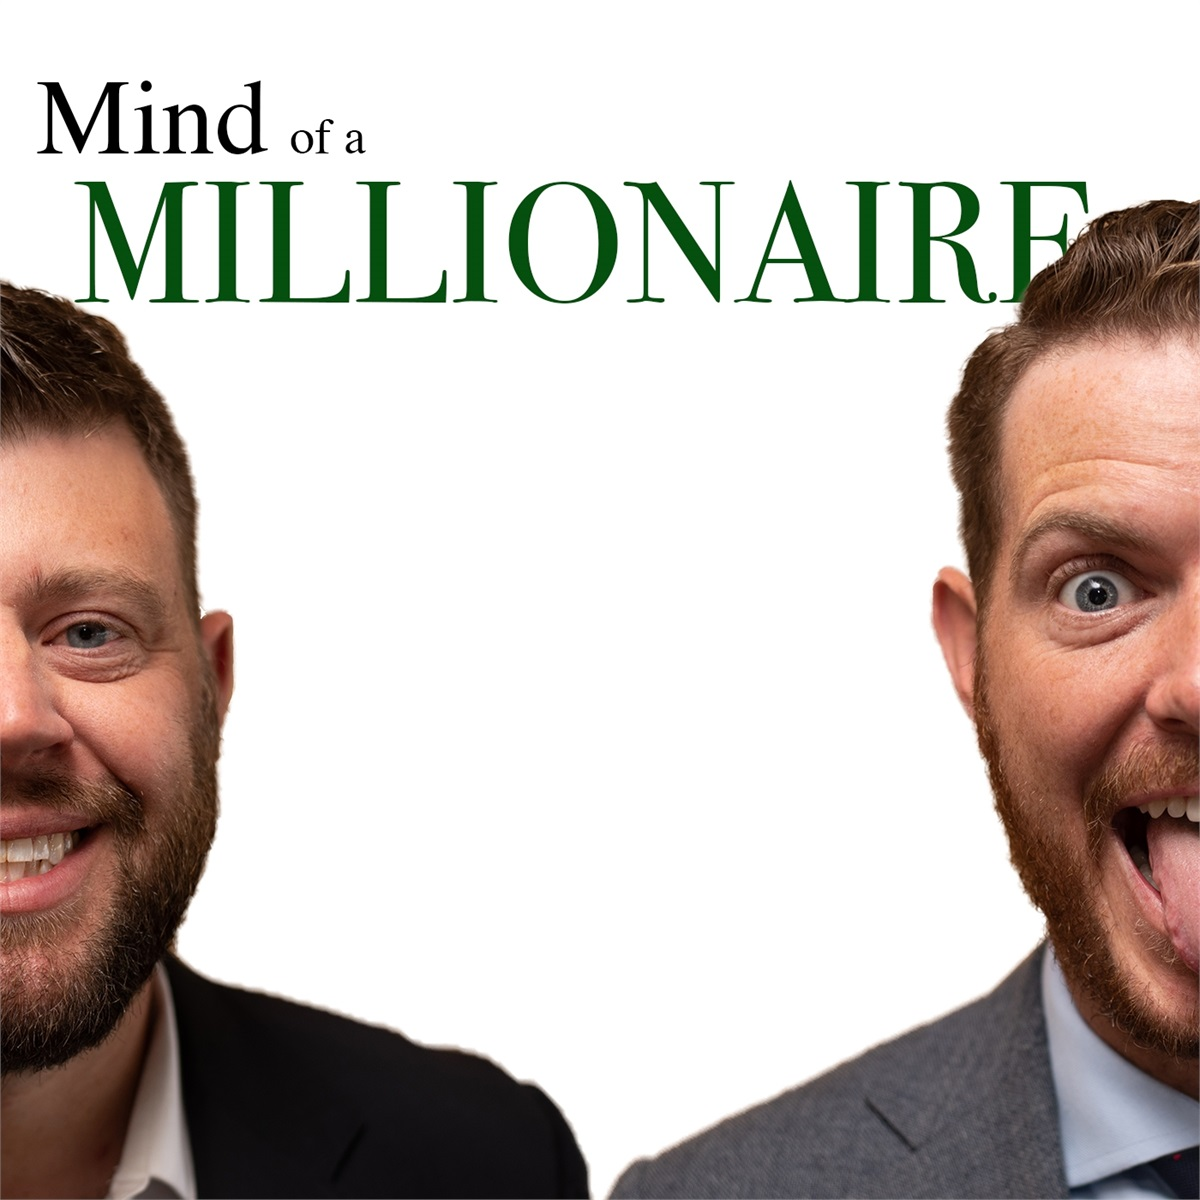 Mind of a Millionaire: How Should You Spend Your Tax Refund?